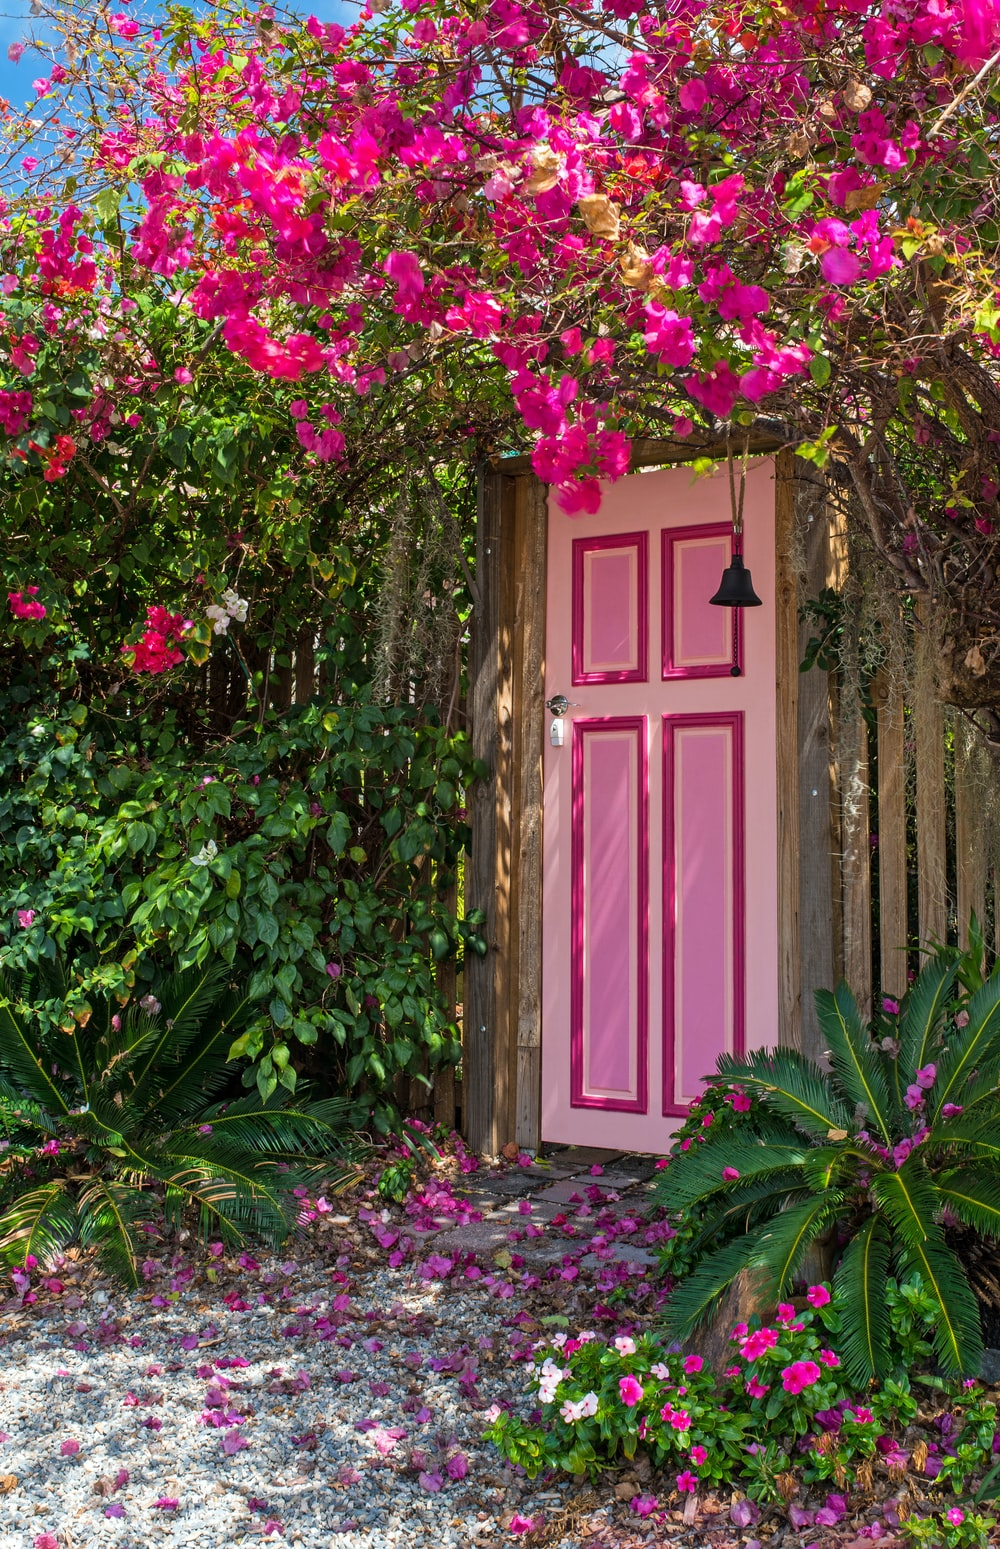 pink wooden door surround by flowers